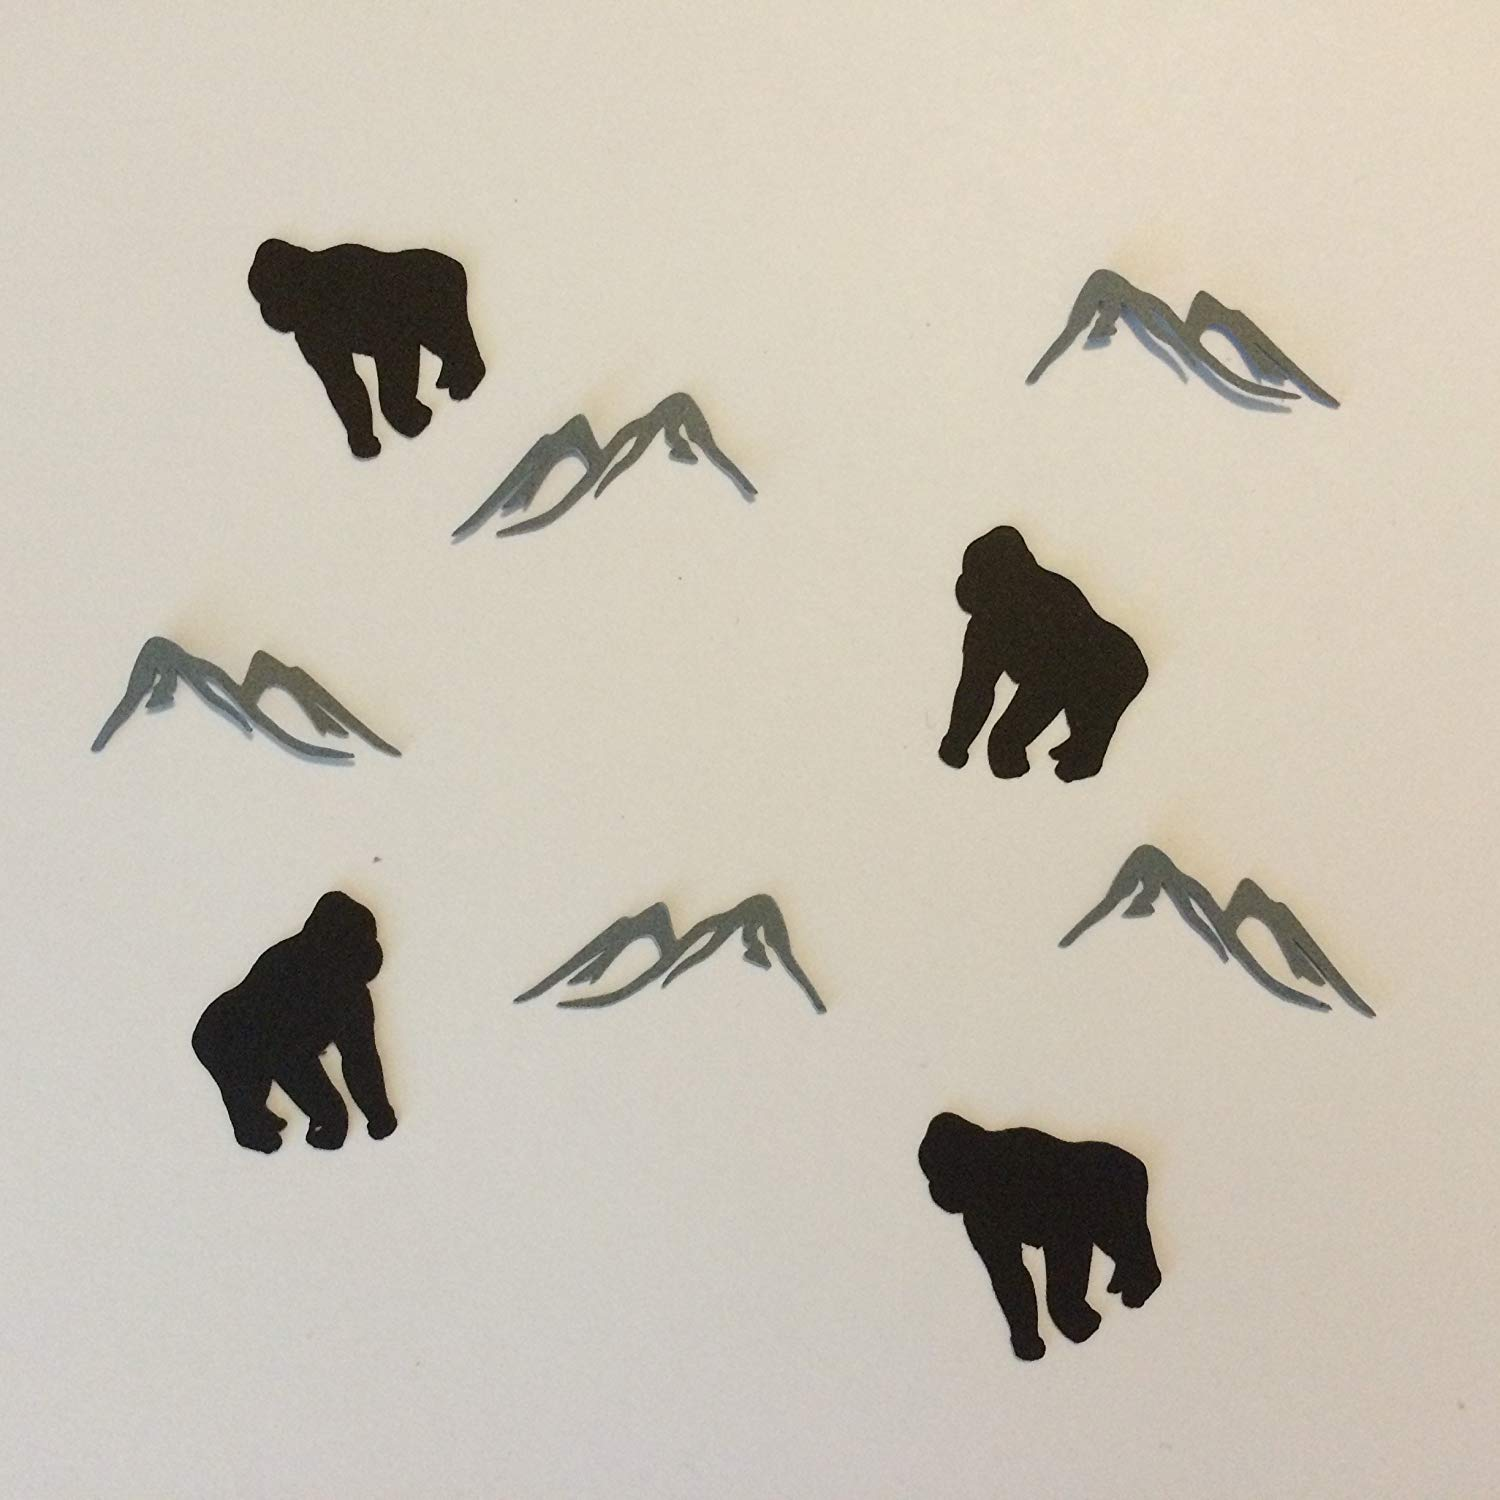 1in Confetti Set, Mountain Cut Outs, Gorilla Cut Outs, Monkey Theme, Animal Theme, Mountain Decorations, Monkey Party Supplies, Baby Shower Decorations, Table Scatter, Party Supplies, Confetti